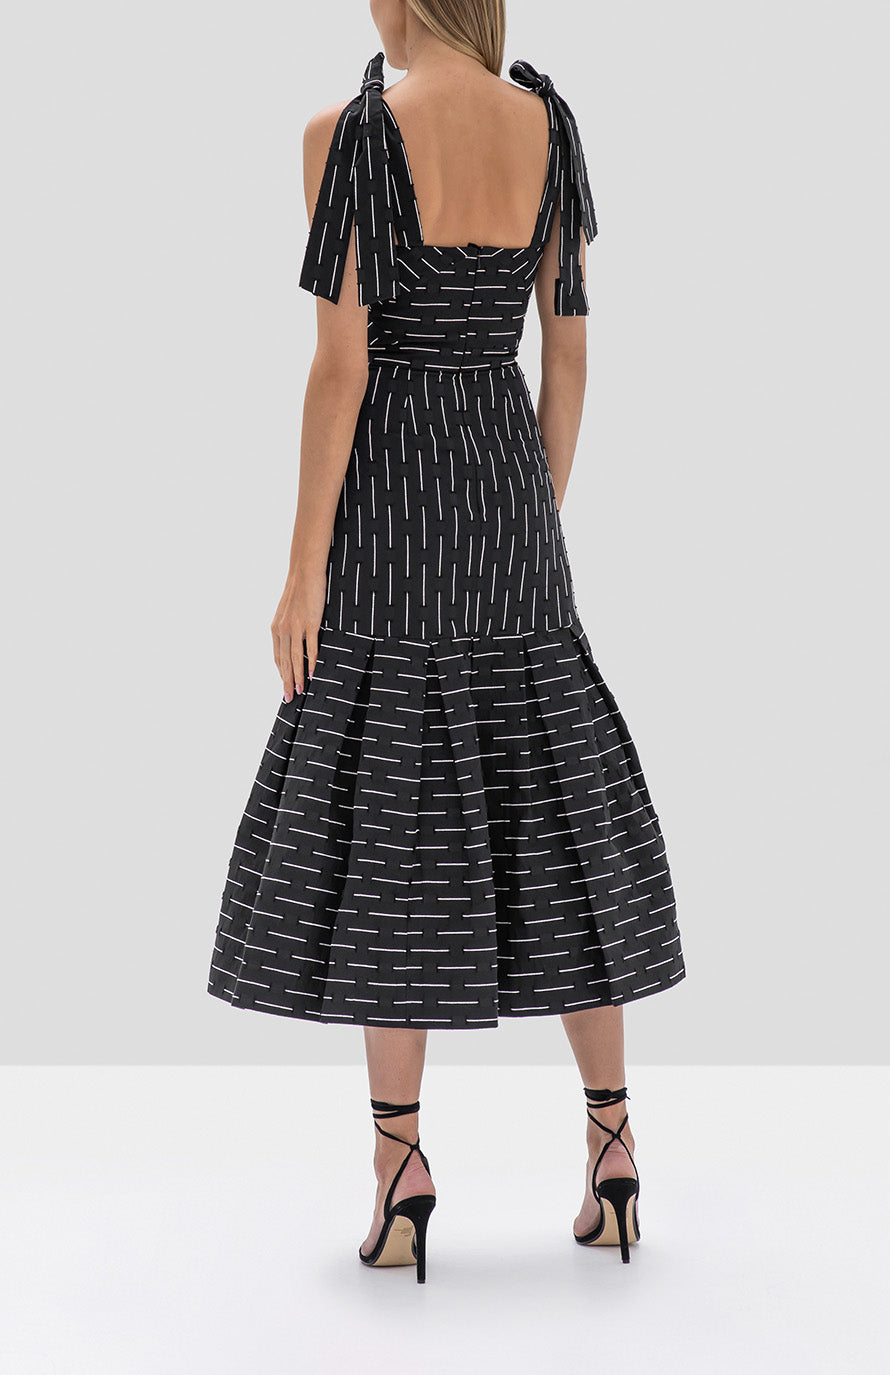 Alexis Leticia Dress in Black Embroidered Stripes - Rear View